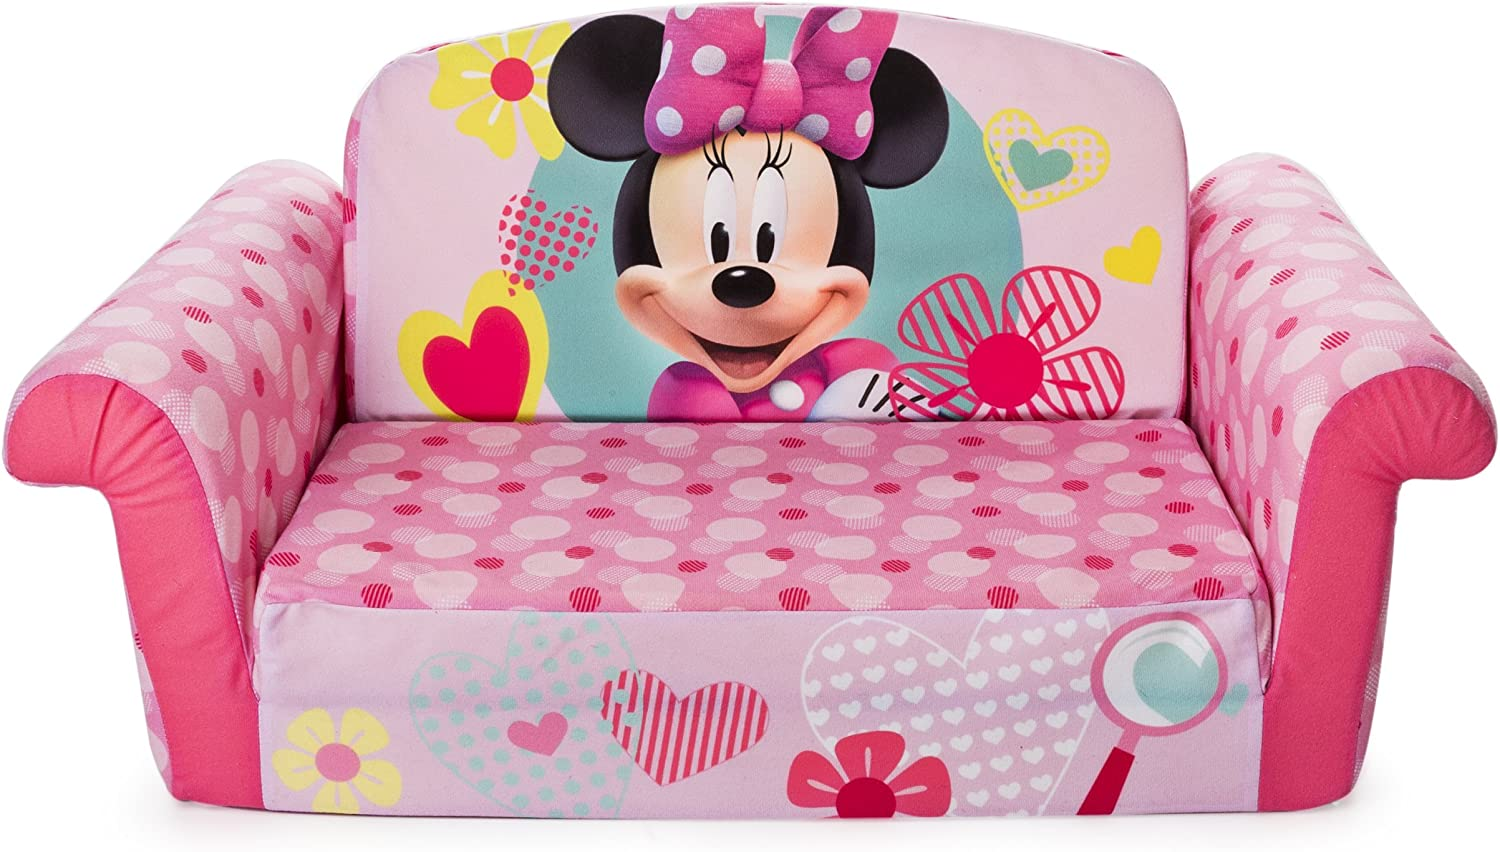 Marshmallow Furniture, Children's 2 in 1 Flip Open Foam Sofa, Minnie Mouse, by Spin Master